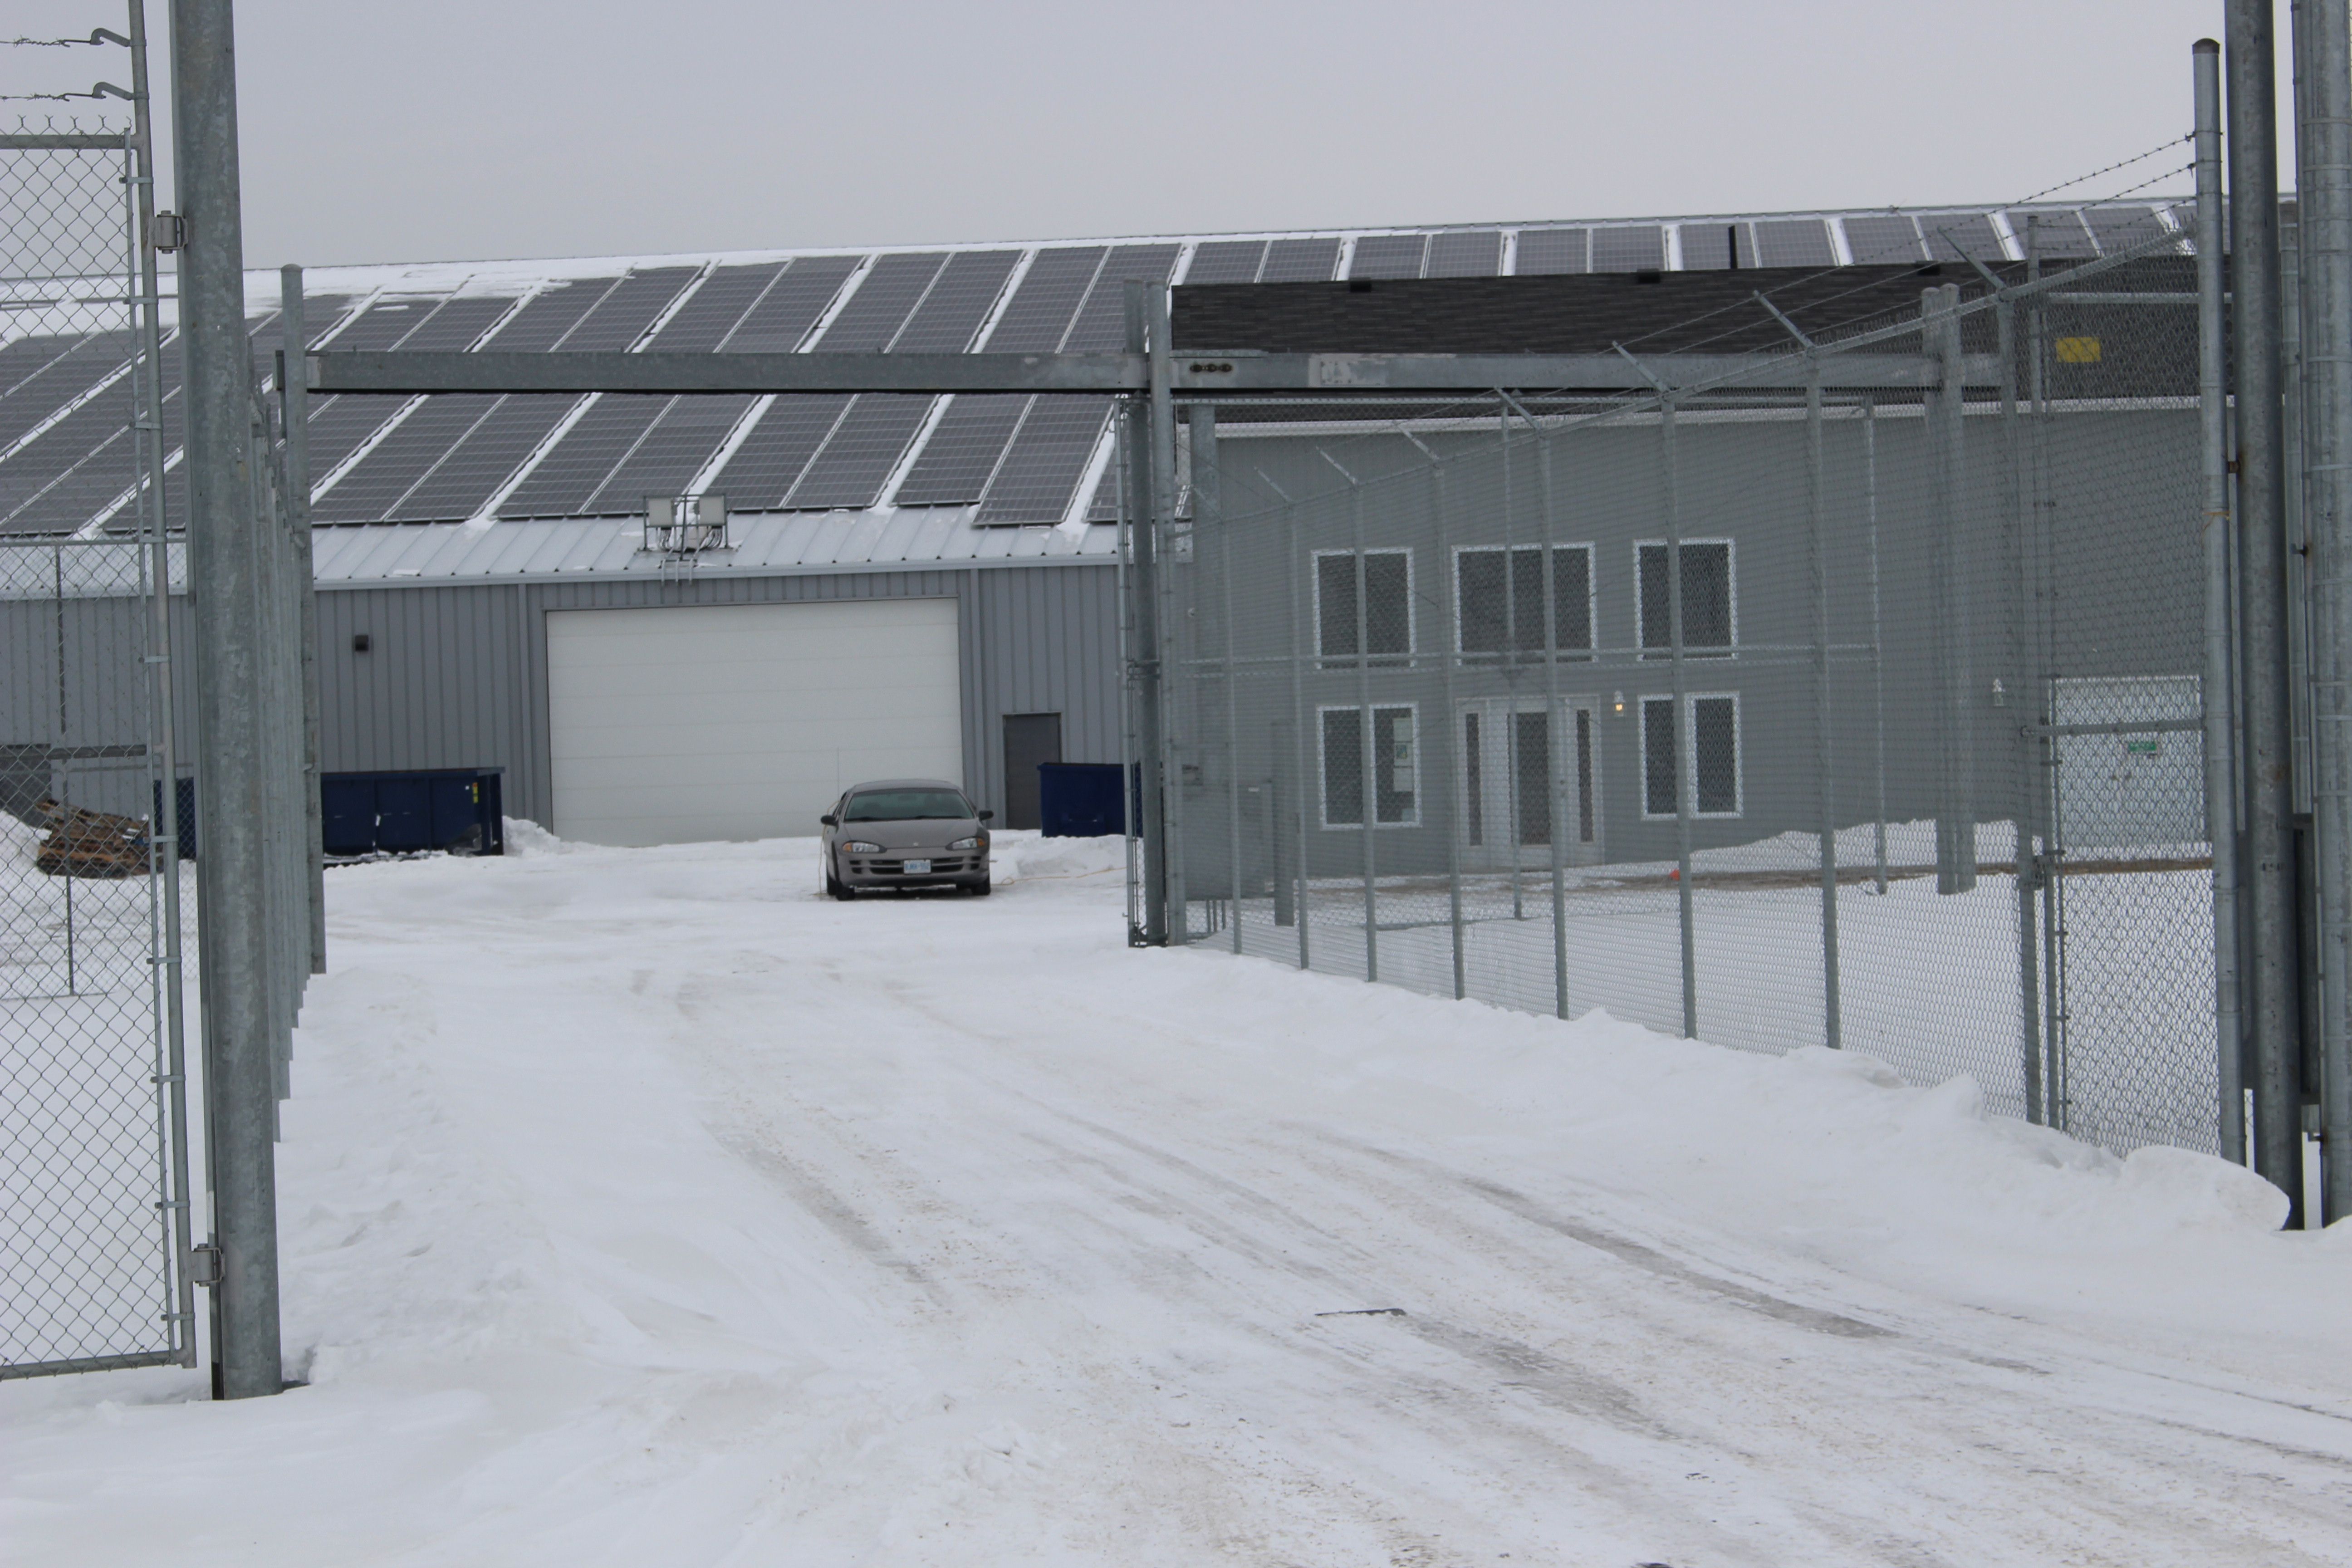 BlackburnNews.com file photo of CEN Biotech in Lakeshore on Manning Rd. and North Rear Rd. on February 24, 2015. (Photo by Jason Viau)